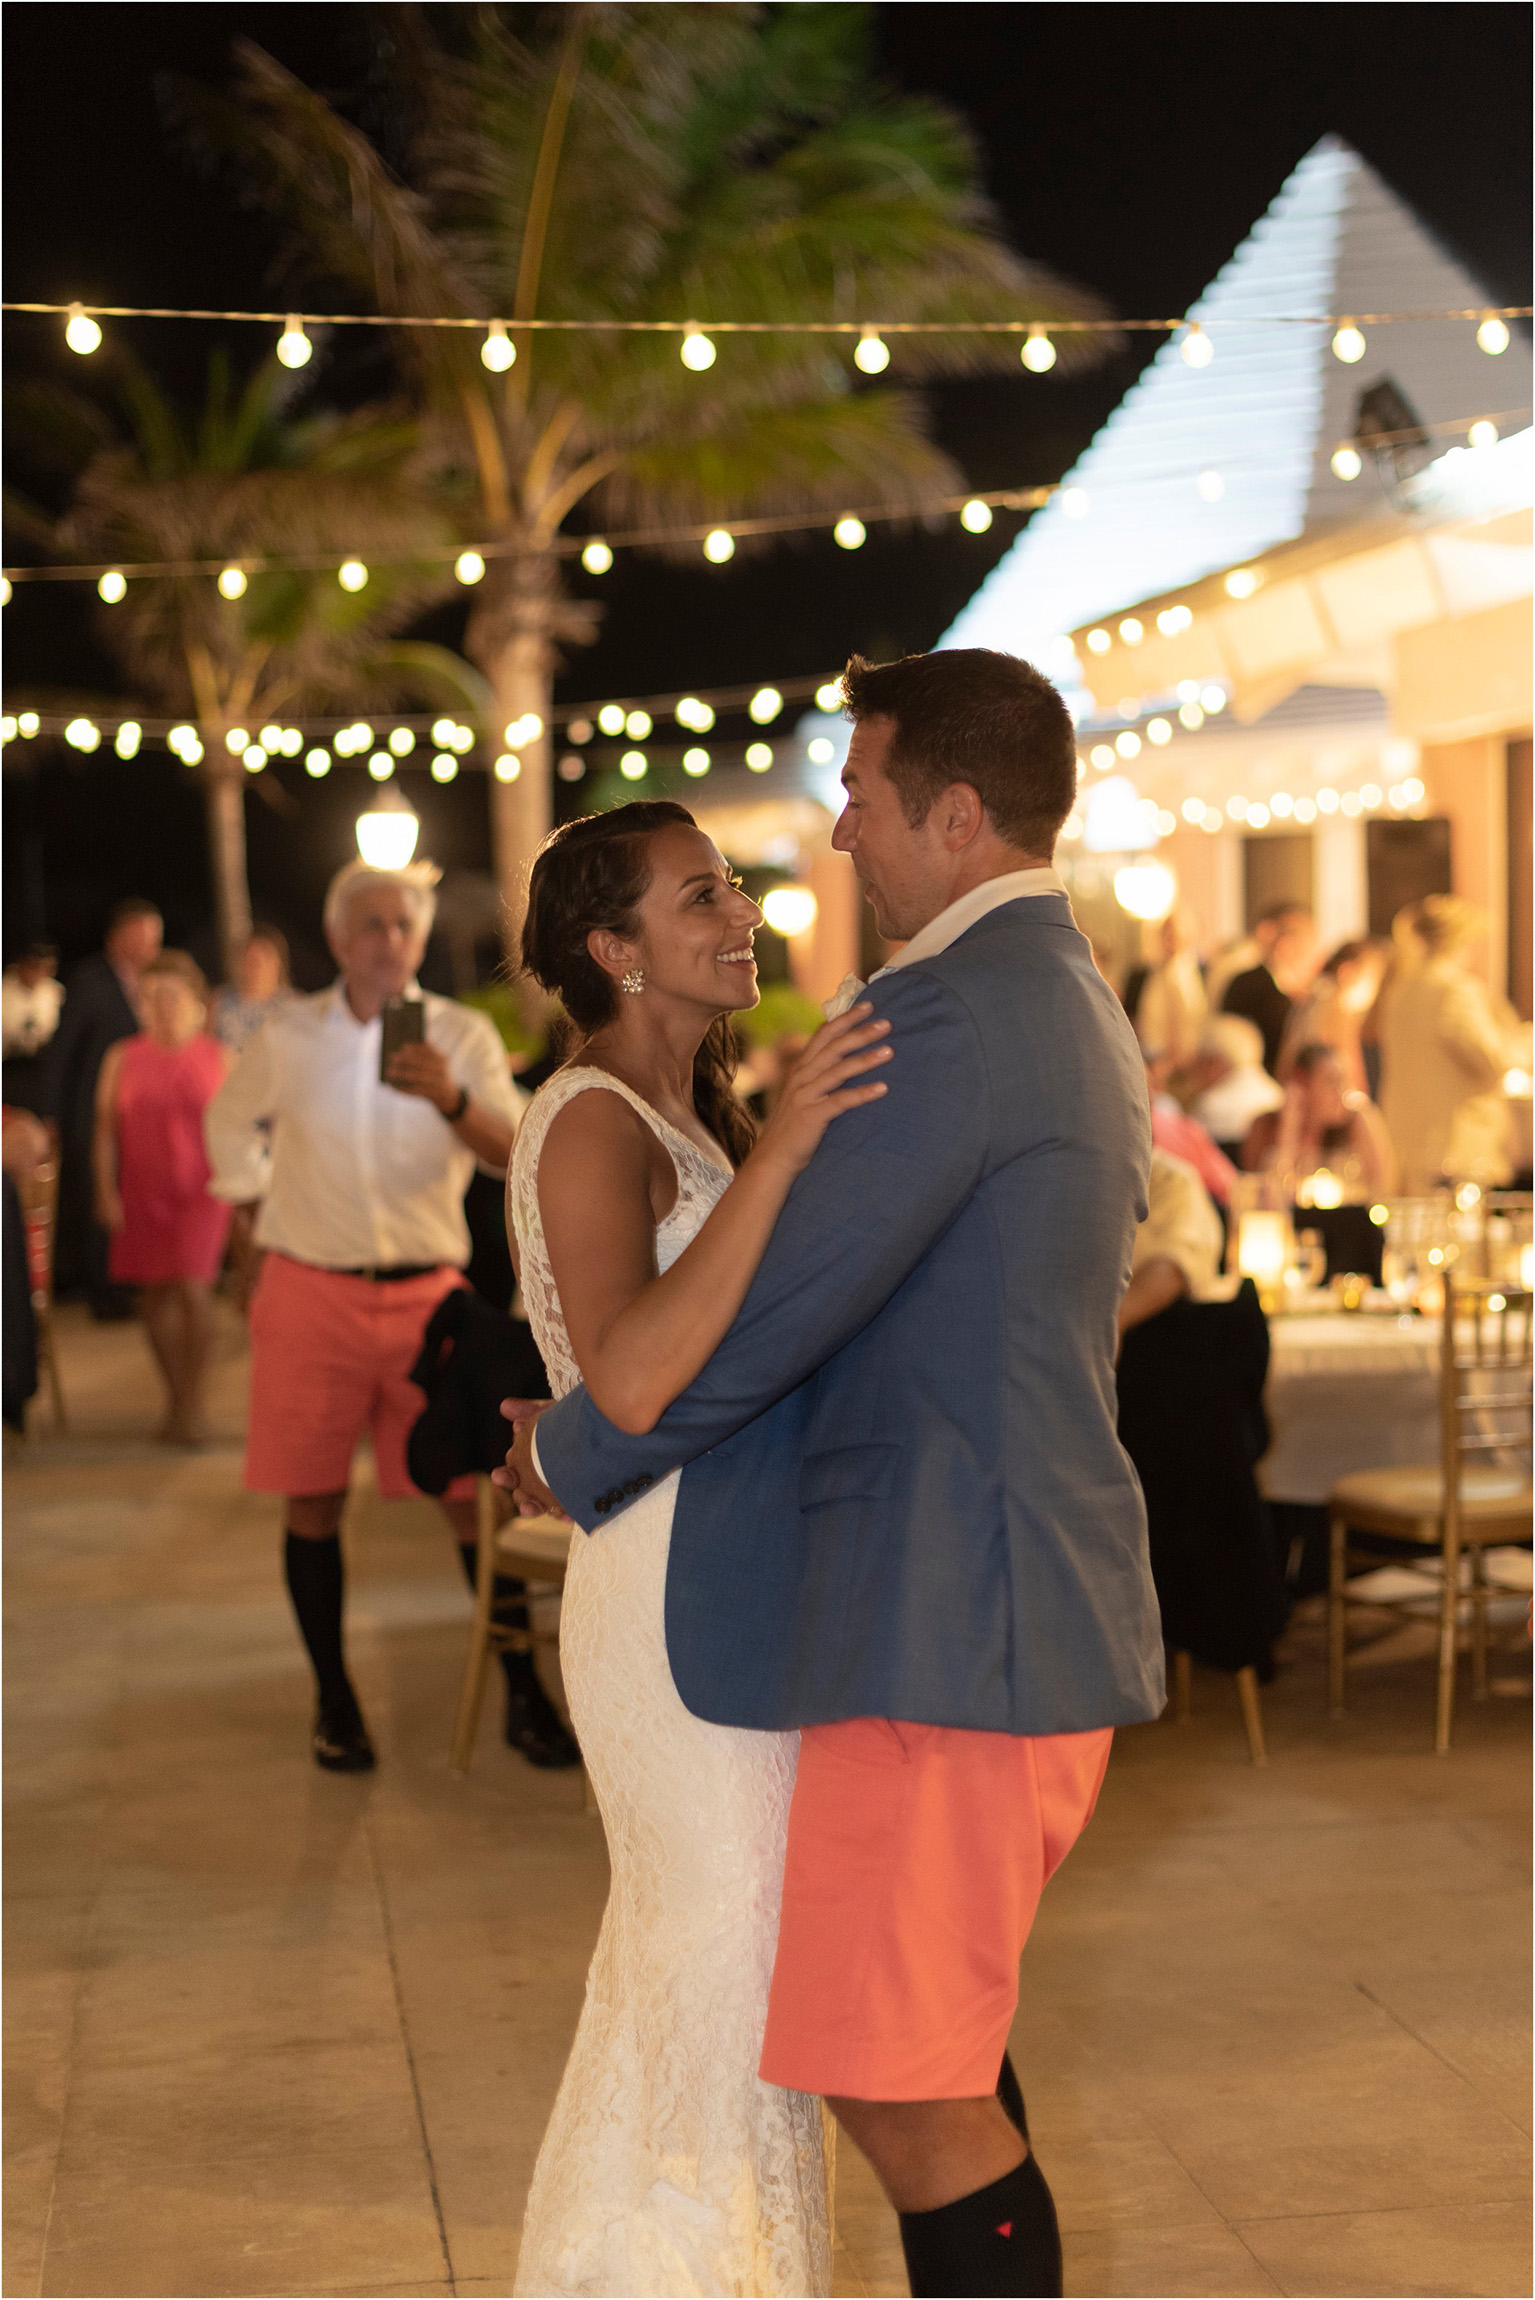 ©FianderFoto_Bermuda Wedding Photographer_Fairmont Southampton_Wedding_Anna_Thomas_106.jpg